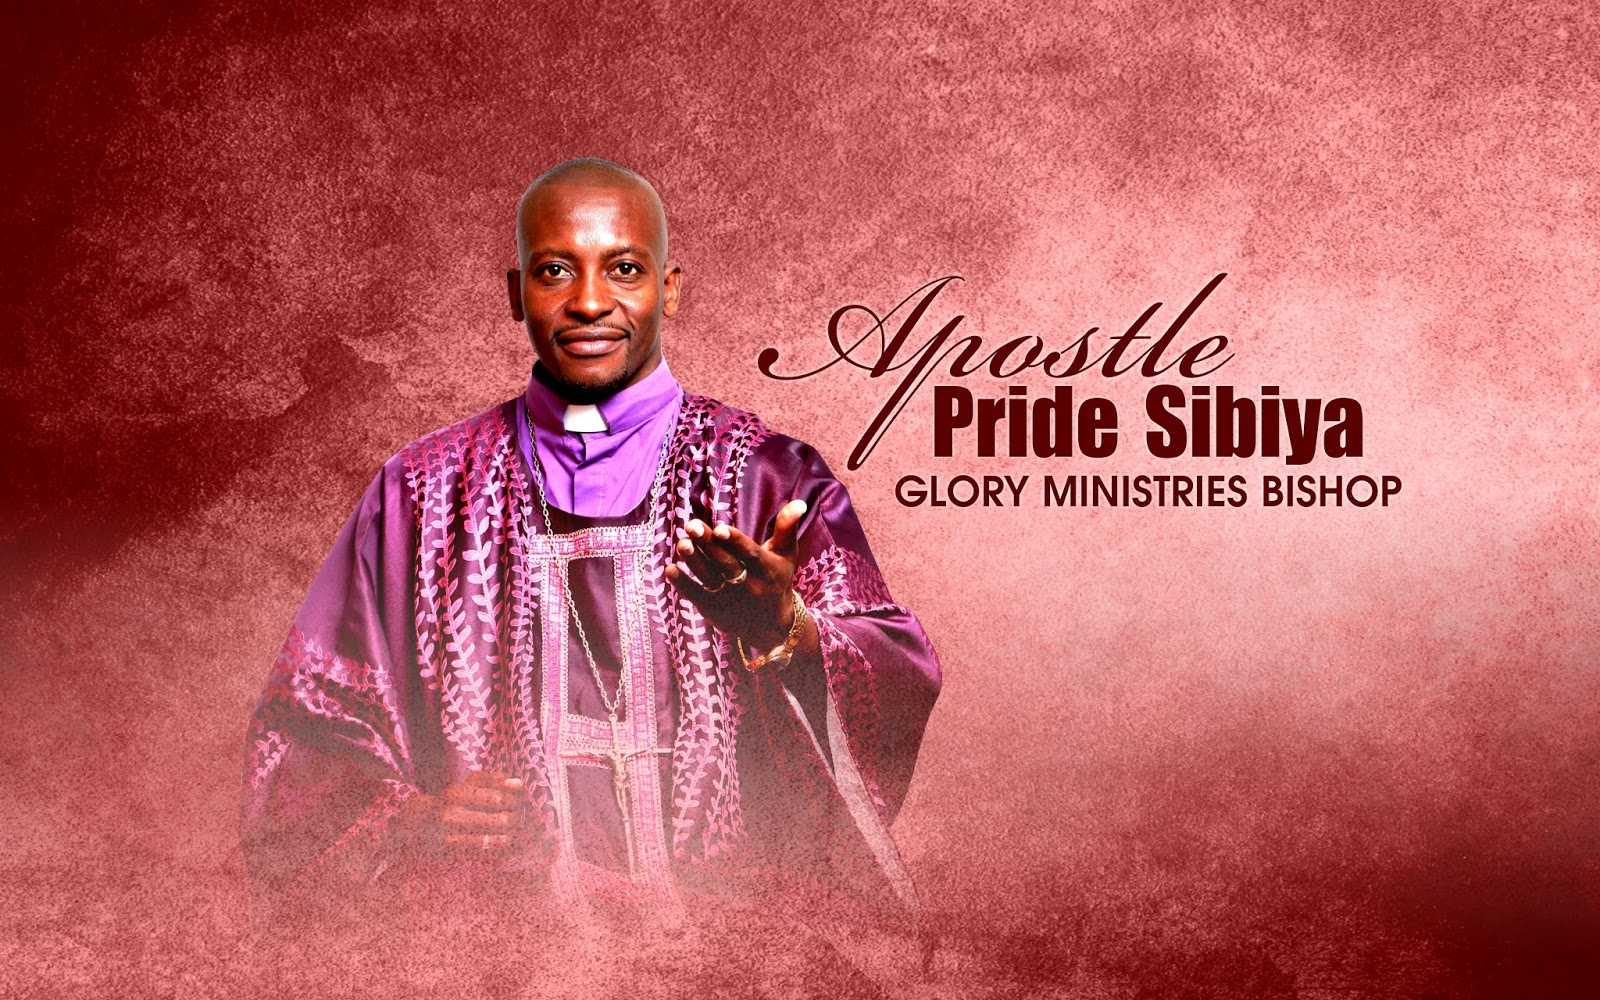 A Brief Profile Of Apostle Pride Sibiya -- The Founder and President Of Glory Ministries